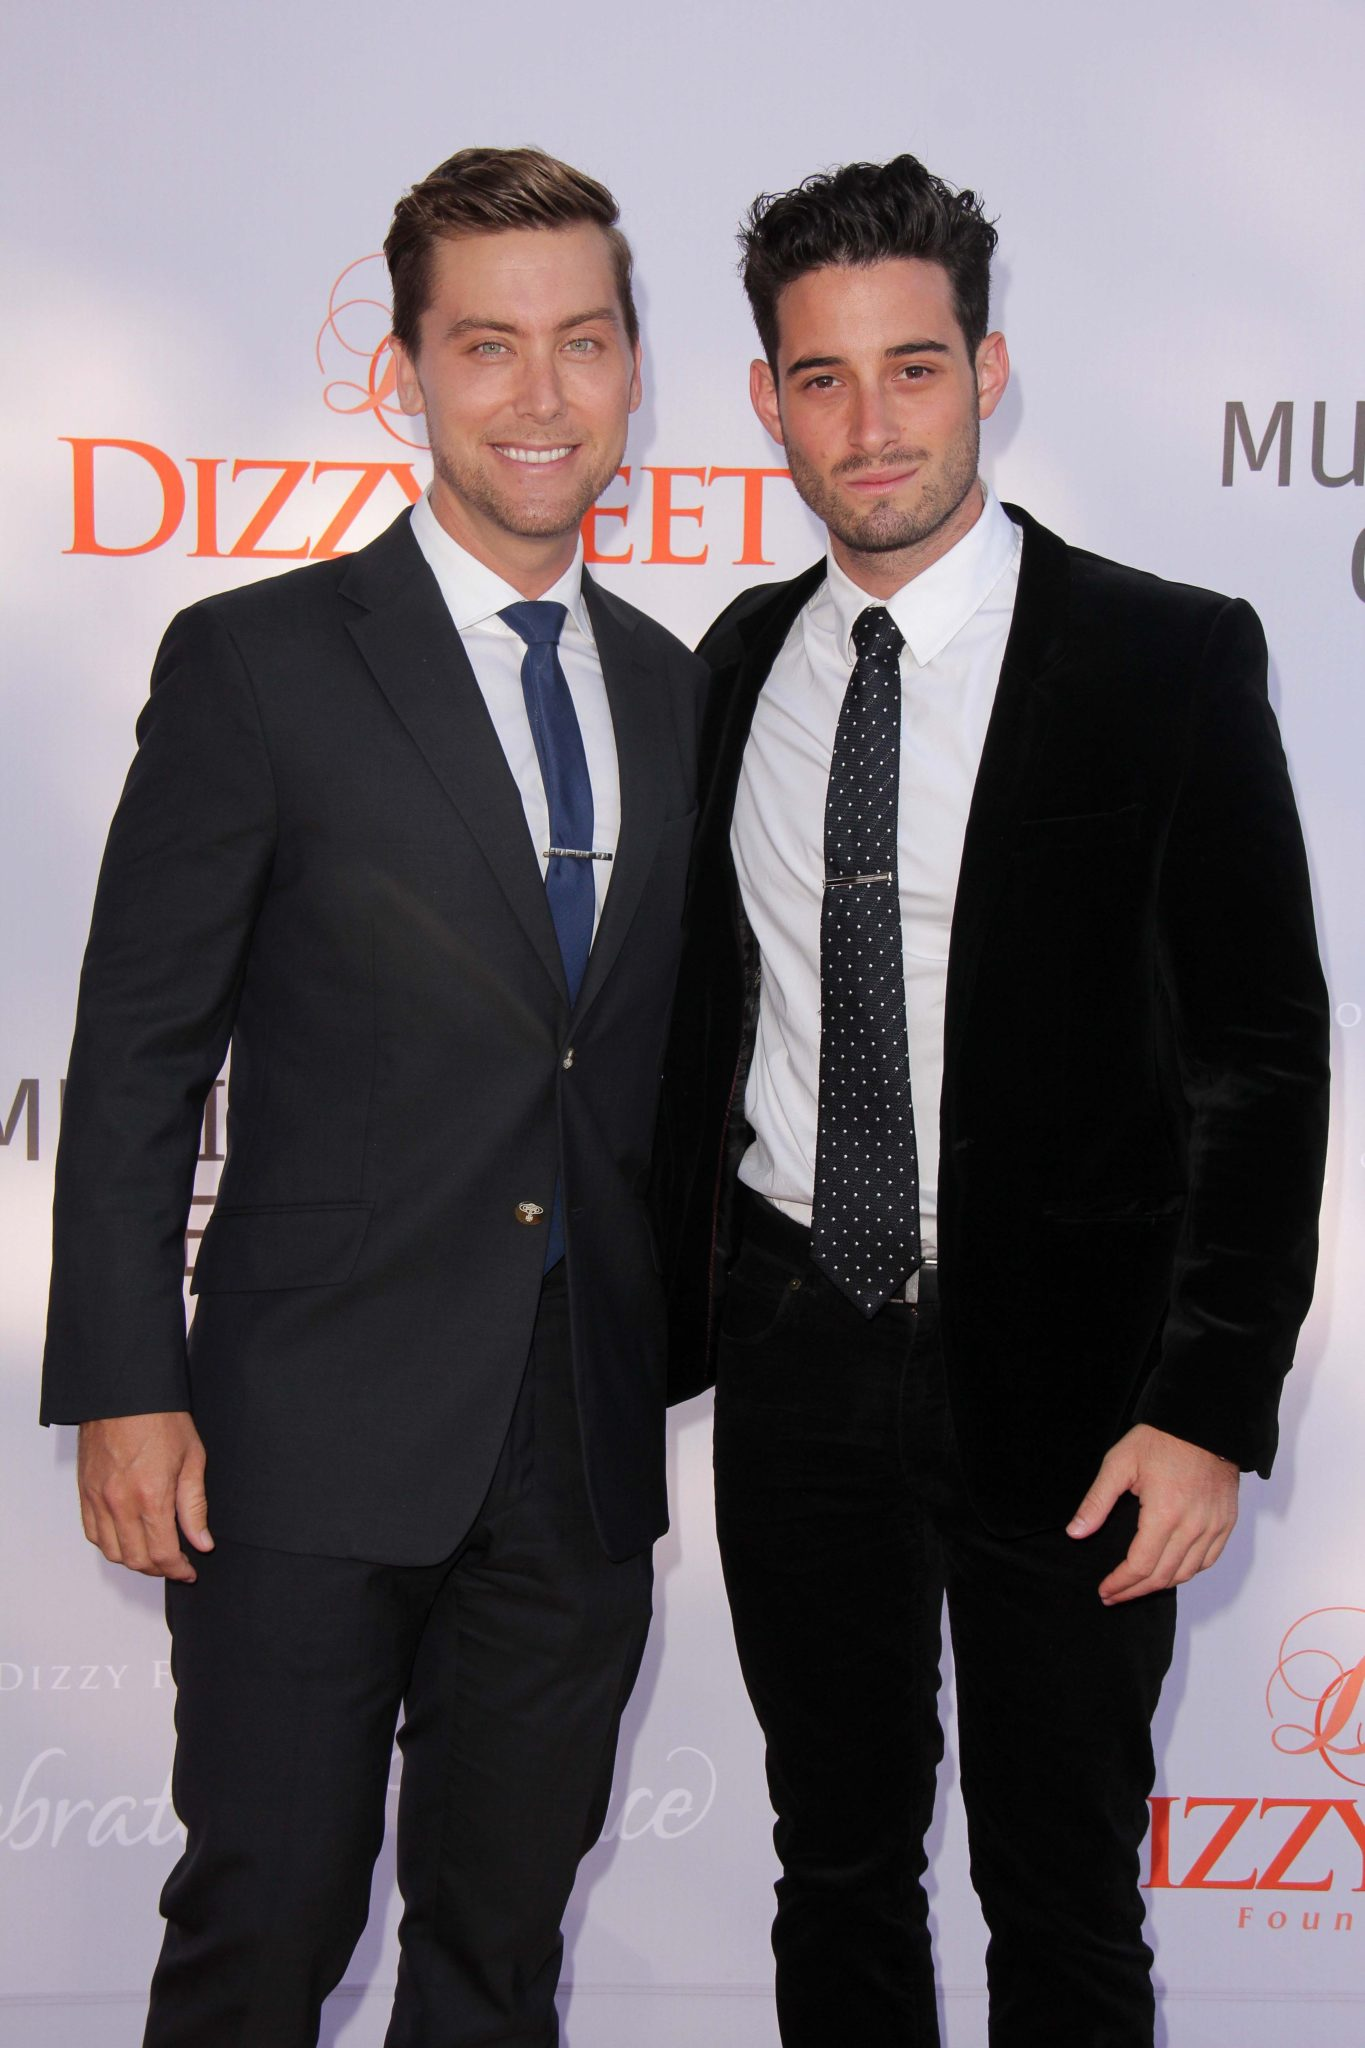 Lance Bass and Michael Turchiat the 3rd Annual Celebration of Dance Gala presented by the Dizzy Feet Foundation, Dorothy Chandler Pavilion, Los Angeles, CA 07-27-13